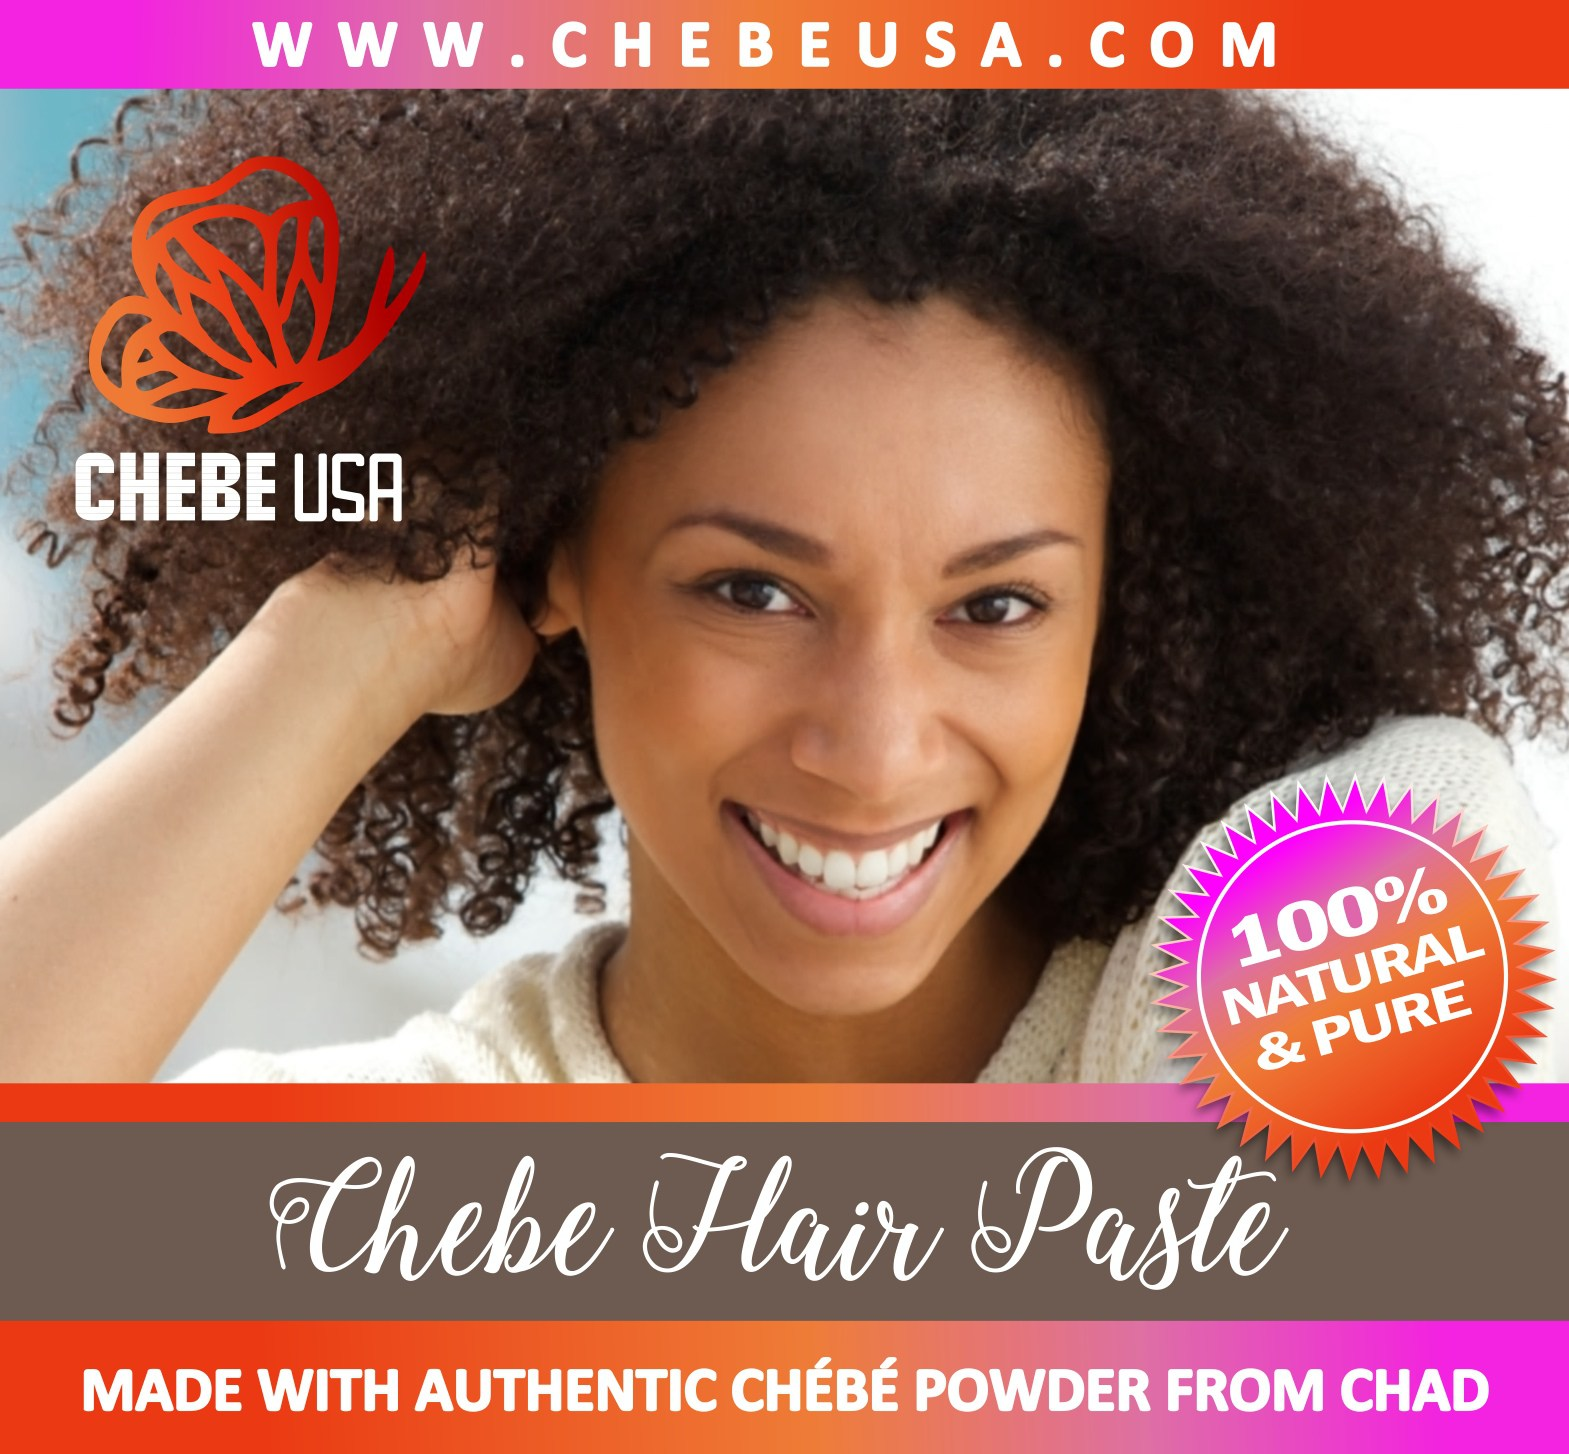 chebe hair paste label